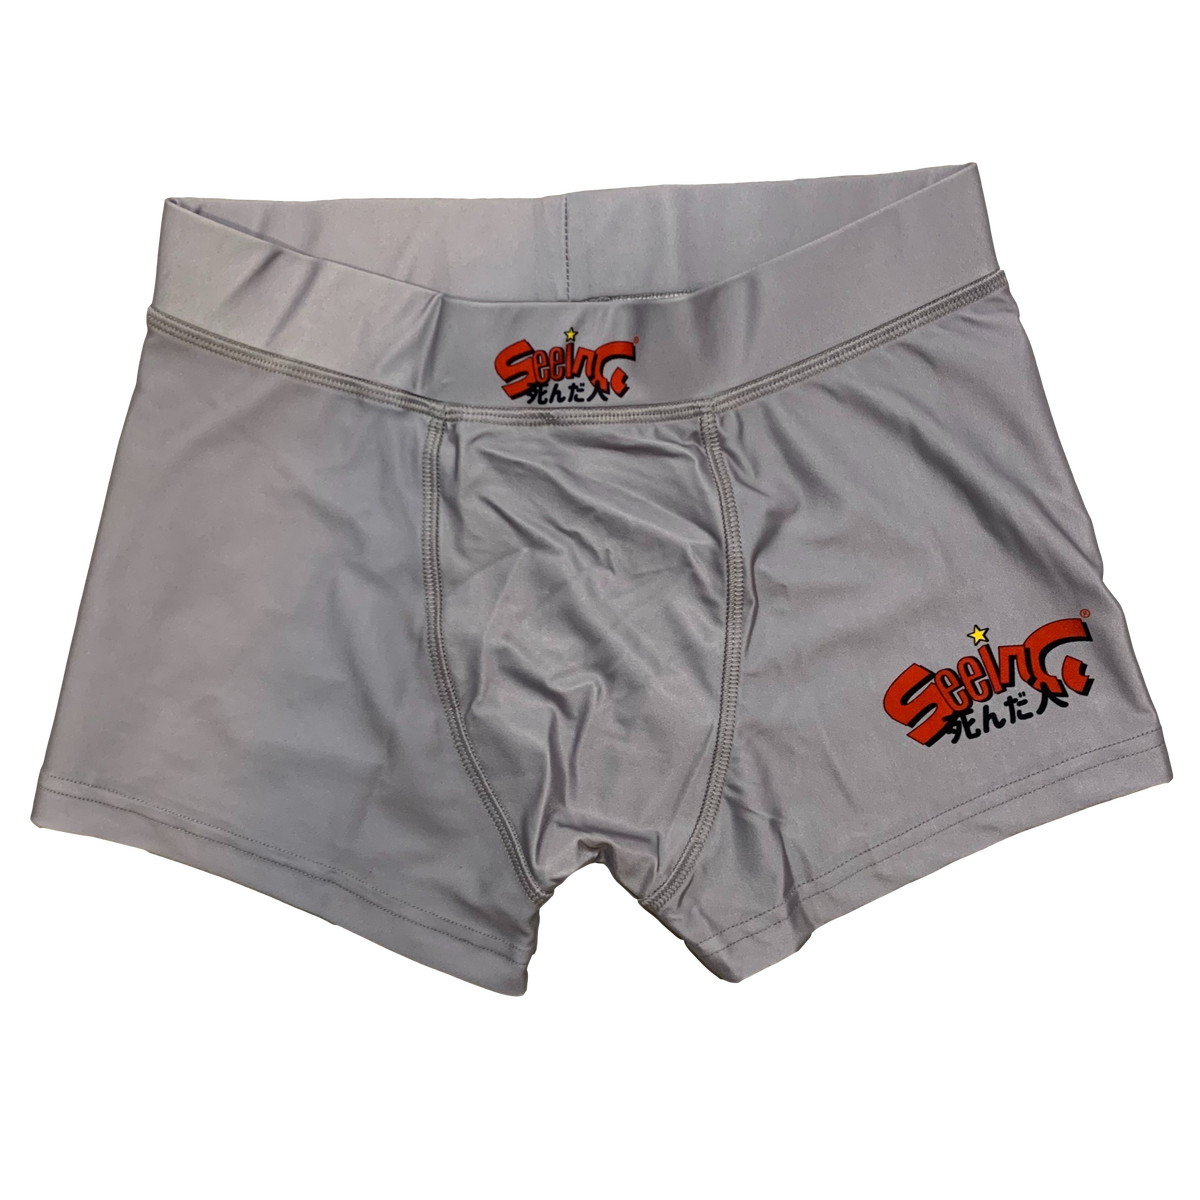 Image of LOGO BOXER BRIEFS 3-PACK